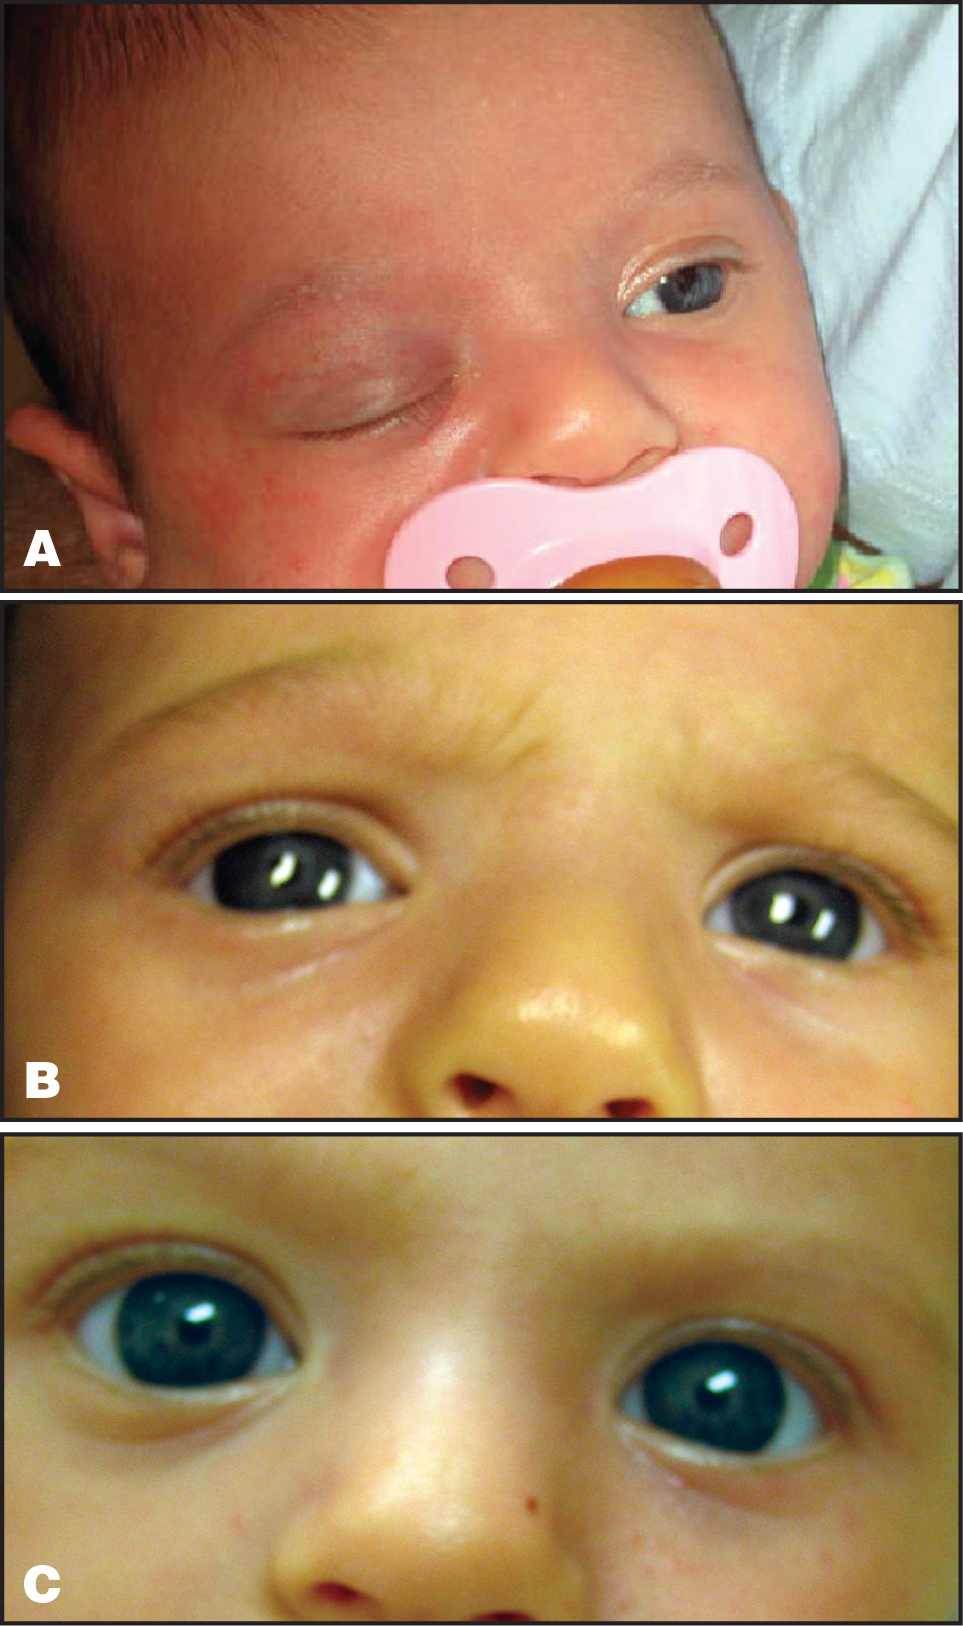 (A) Photograph Prior to Initiation of Propranolol Treatment. (B) Photograph 6 Days After Initiation of Propranolol Treatment. (C) Photograph 6½ Weeks After Initiation of Propranolol Treatment.